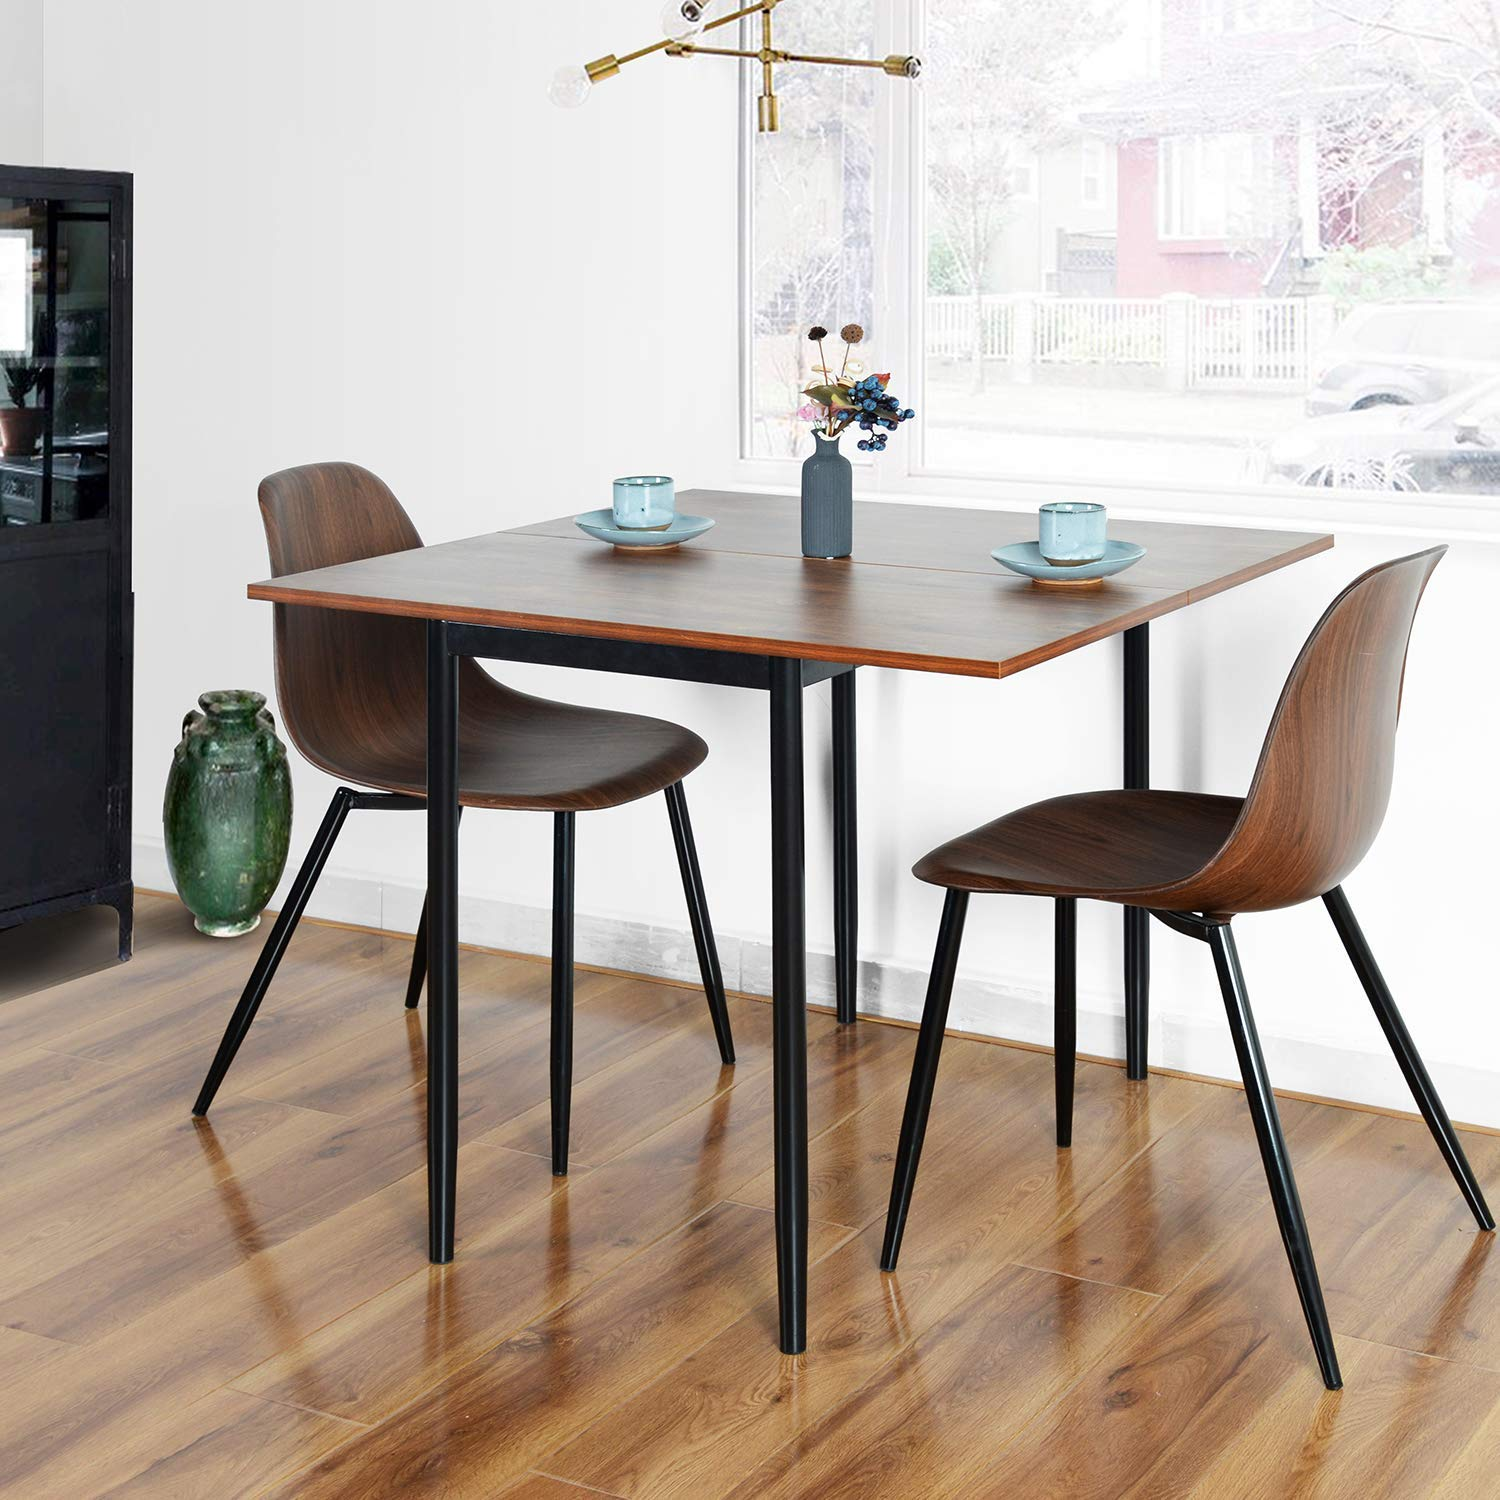 HOMY CASA Wooden Adjustable Dining Tabletop with Metal Base, Multifunctional Rectangular Squared Kitchen Table & Dual Purpose Saving Space (Walnut)